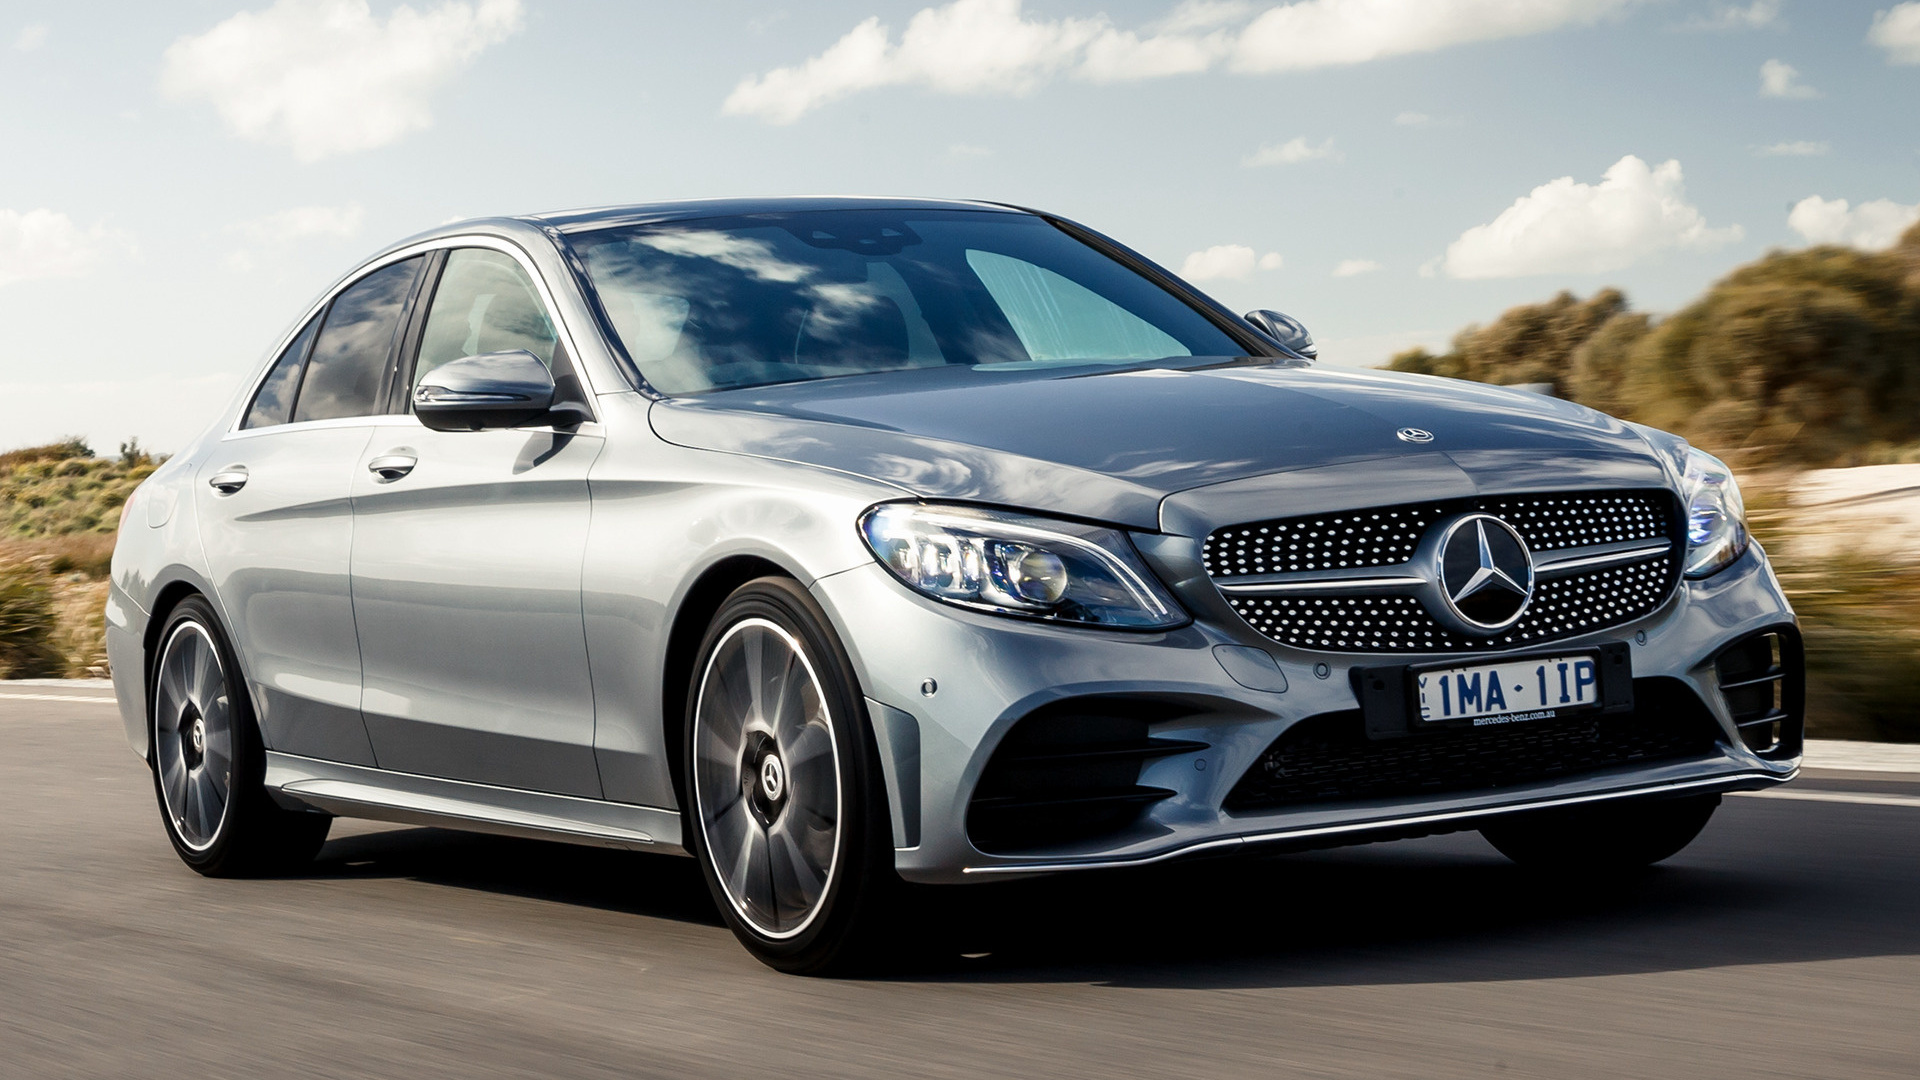 2018 Mercedes-Benz C-Class AMG Line (AU) - Wallpapers and ...